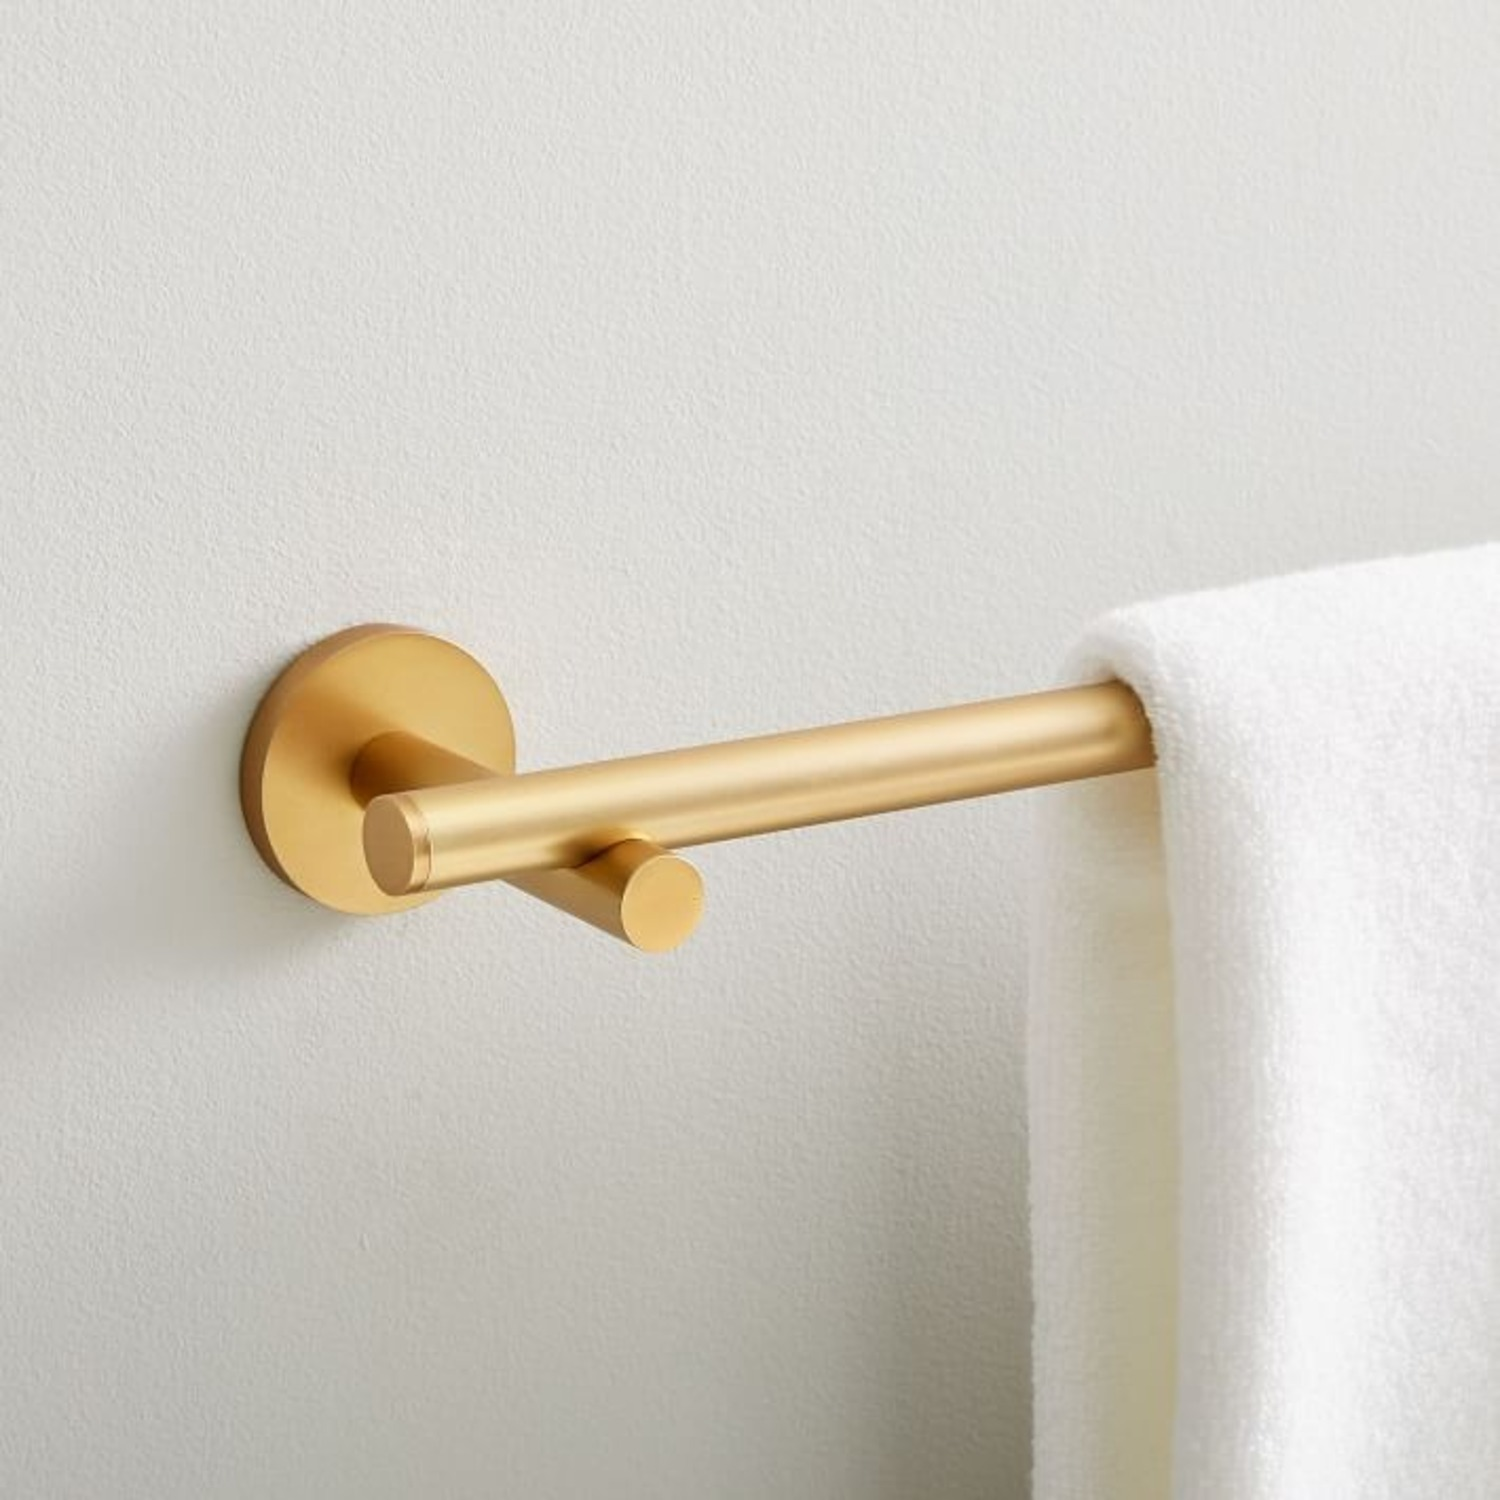 West Elm Modern Overhang Towel Bar - image-1